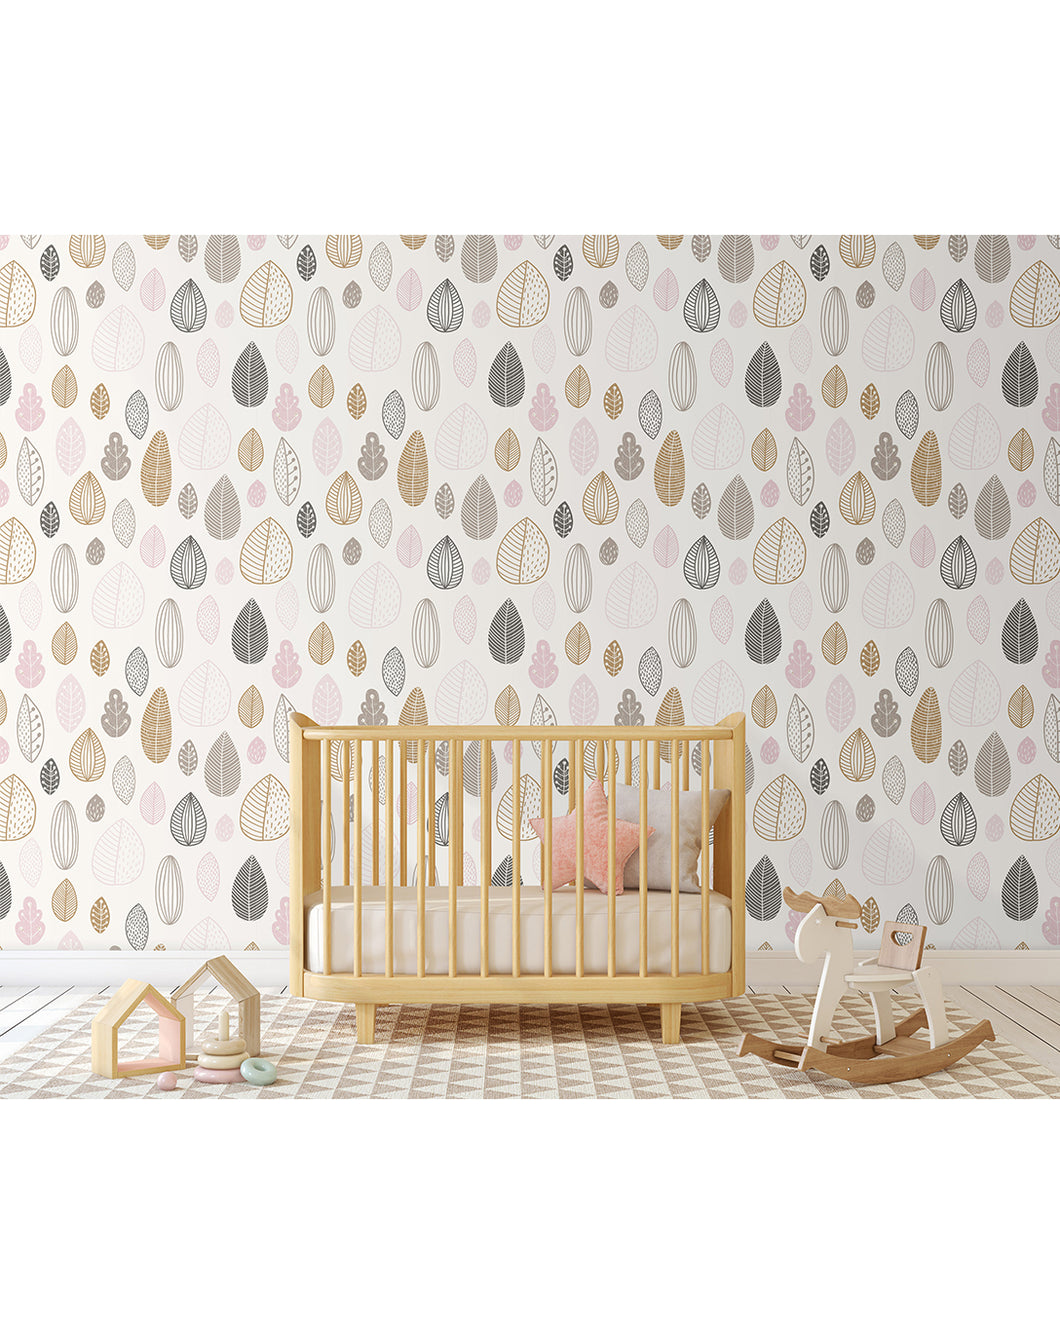 Self Adhesive Minimalistic Leaves Removable Wallpaper For Kids Room Costacover